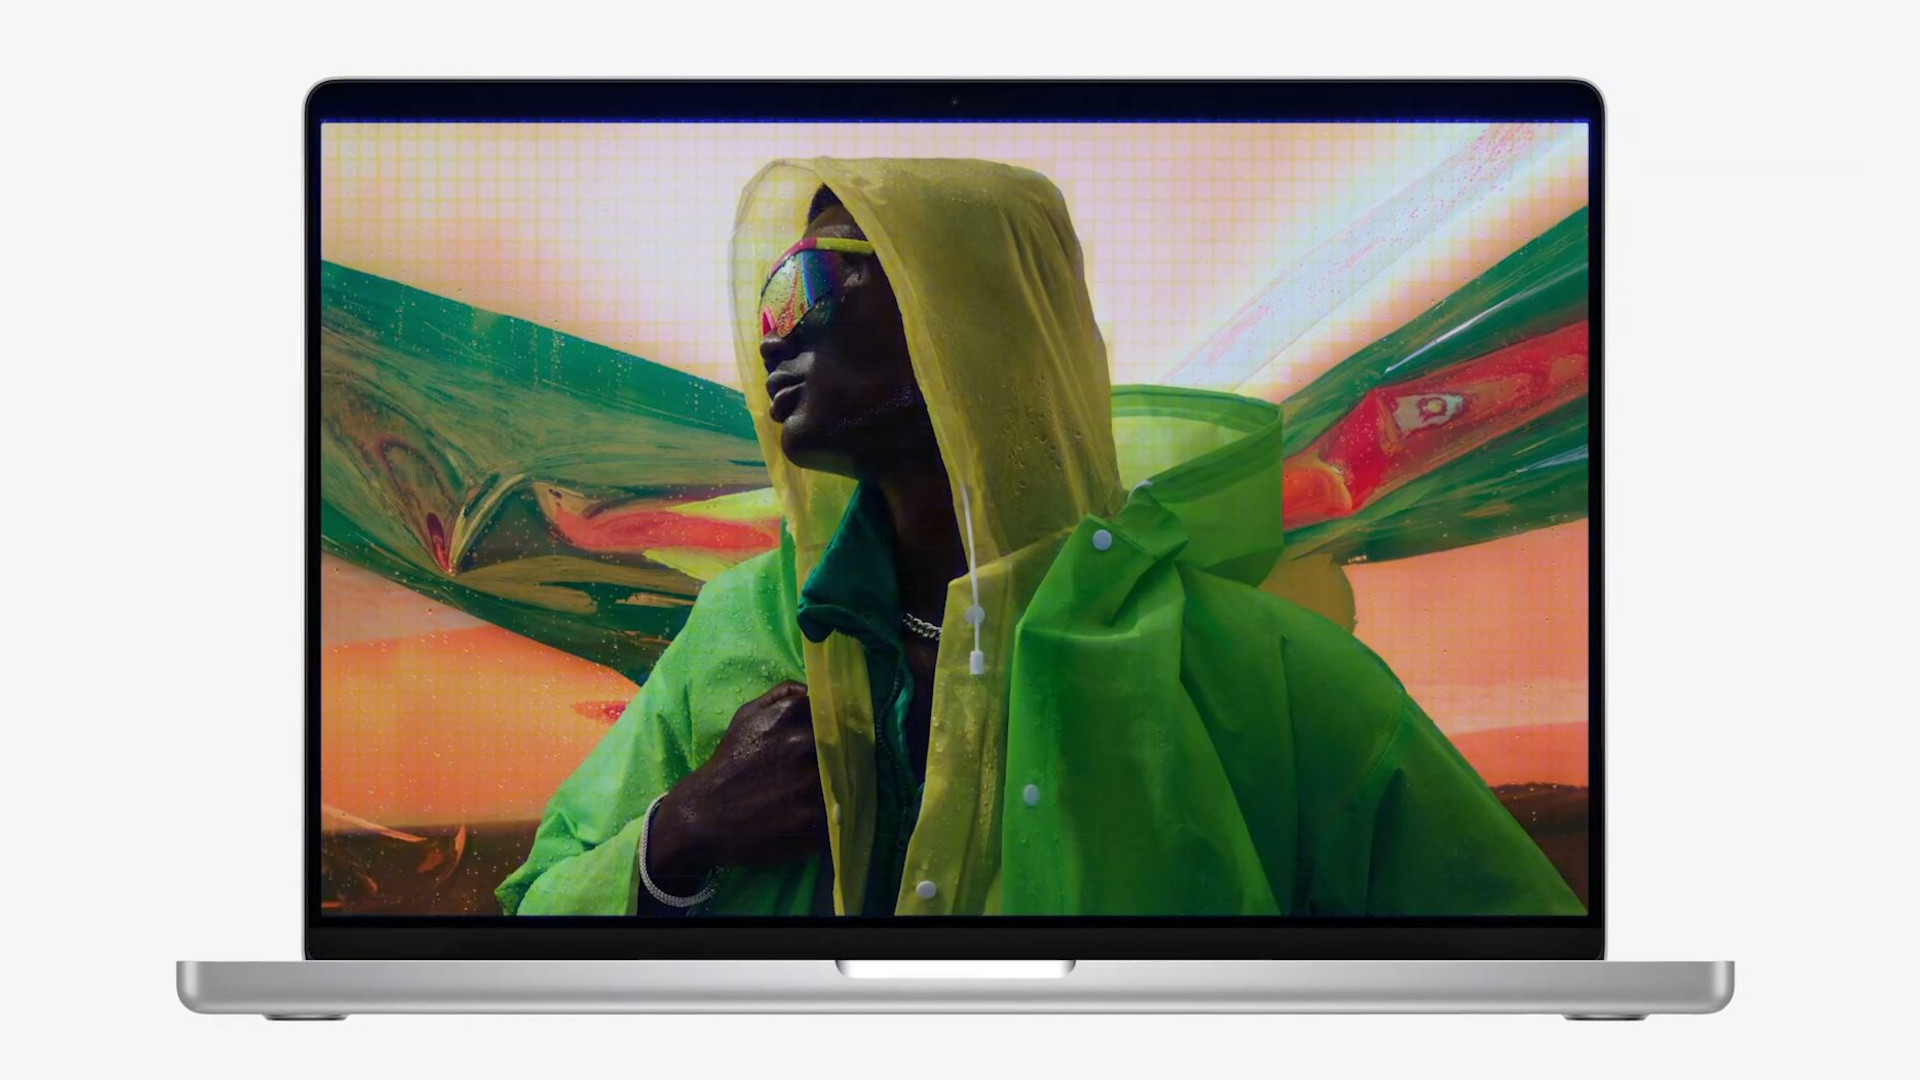 The MacBook Pro 14-inch (2021) featuring a model wearing vivid, colorful clothing